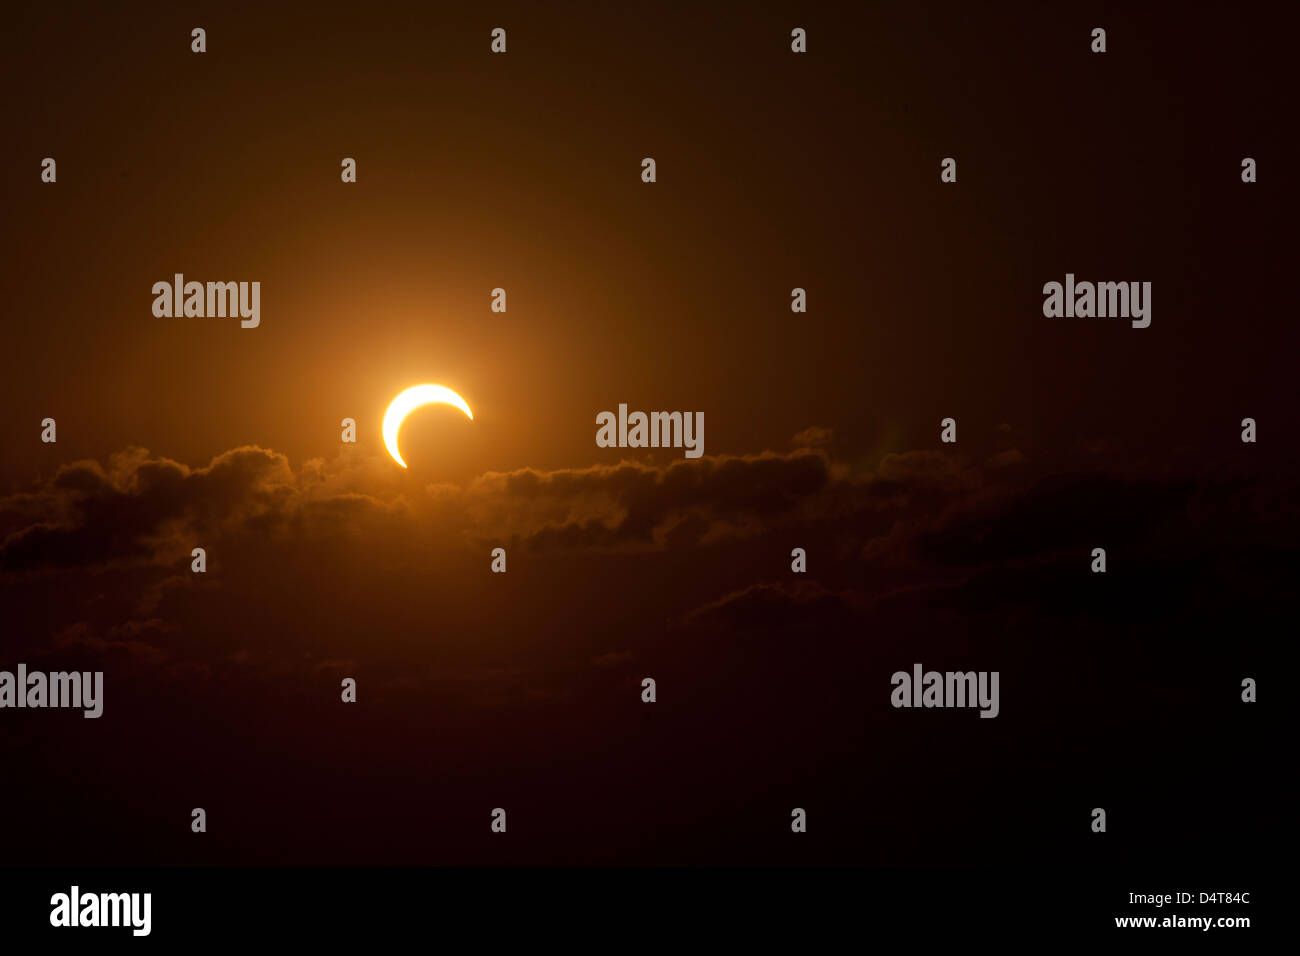 Partial solar eclipse of 2012. - Stock Image